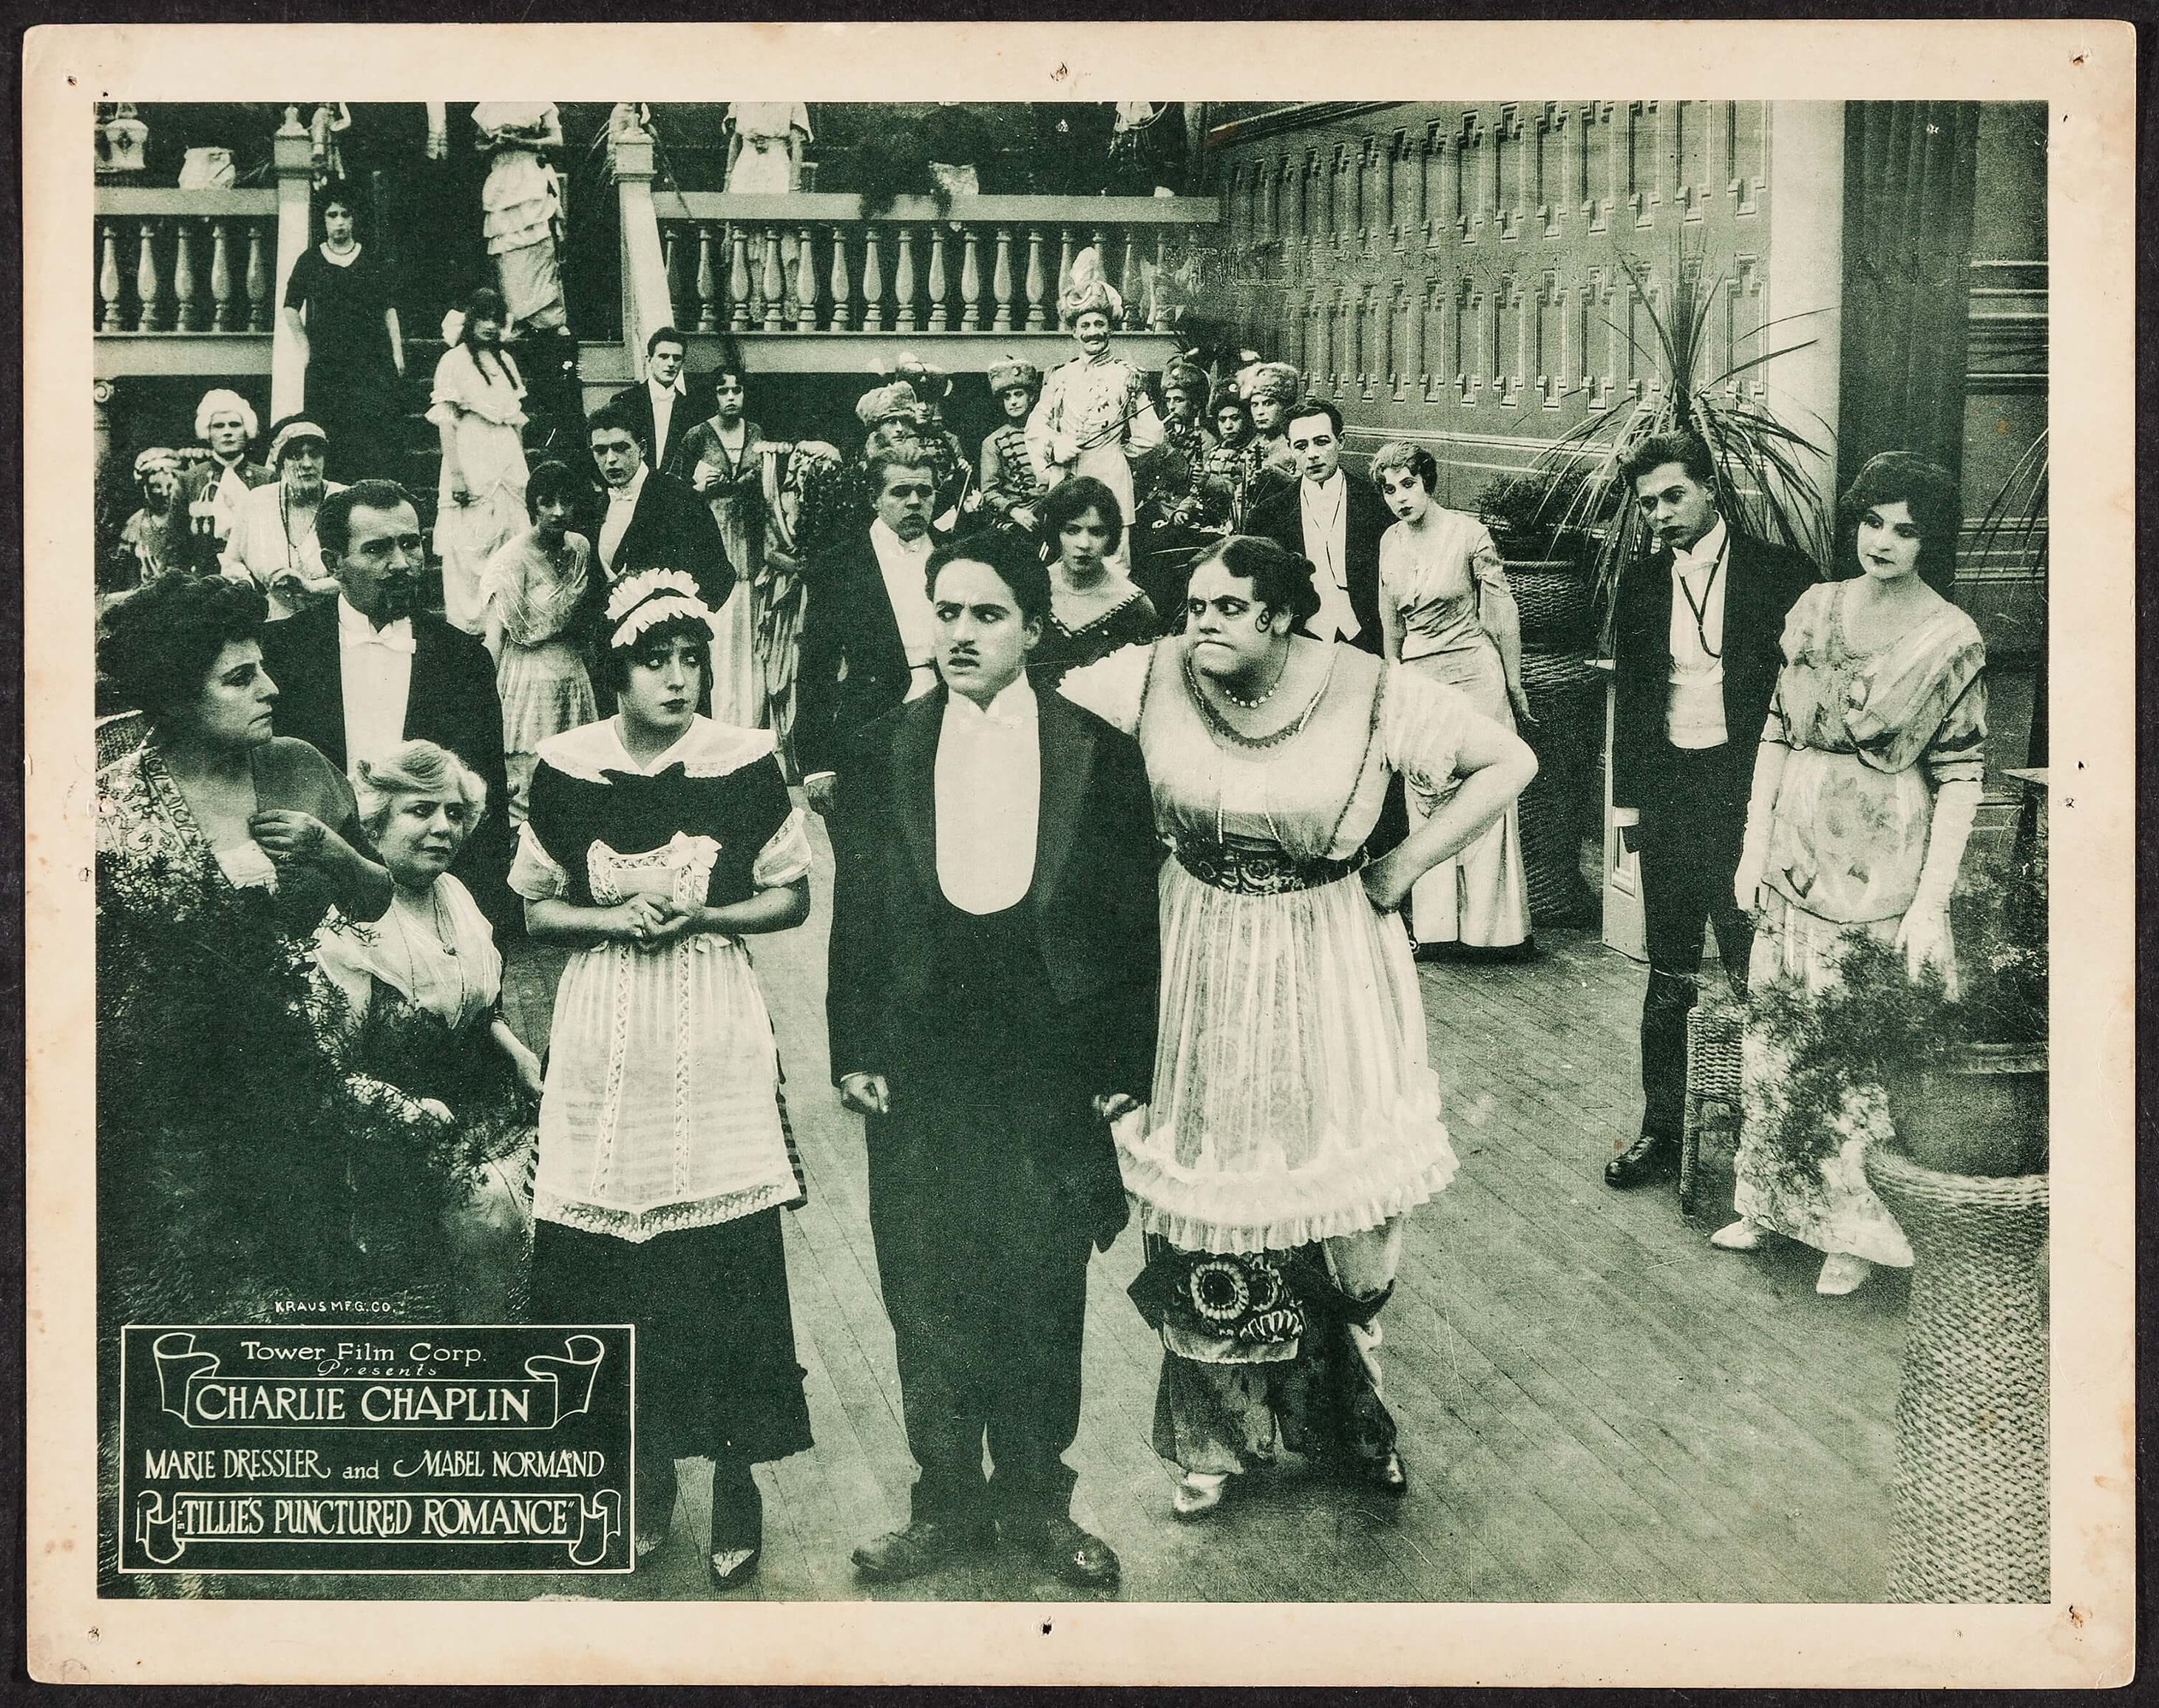 Mabel Normand, Charlie Chaplin and Marie Dressler in Tillie's Punctured Romance (1914) US 1918 reissue lobby card